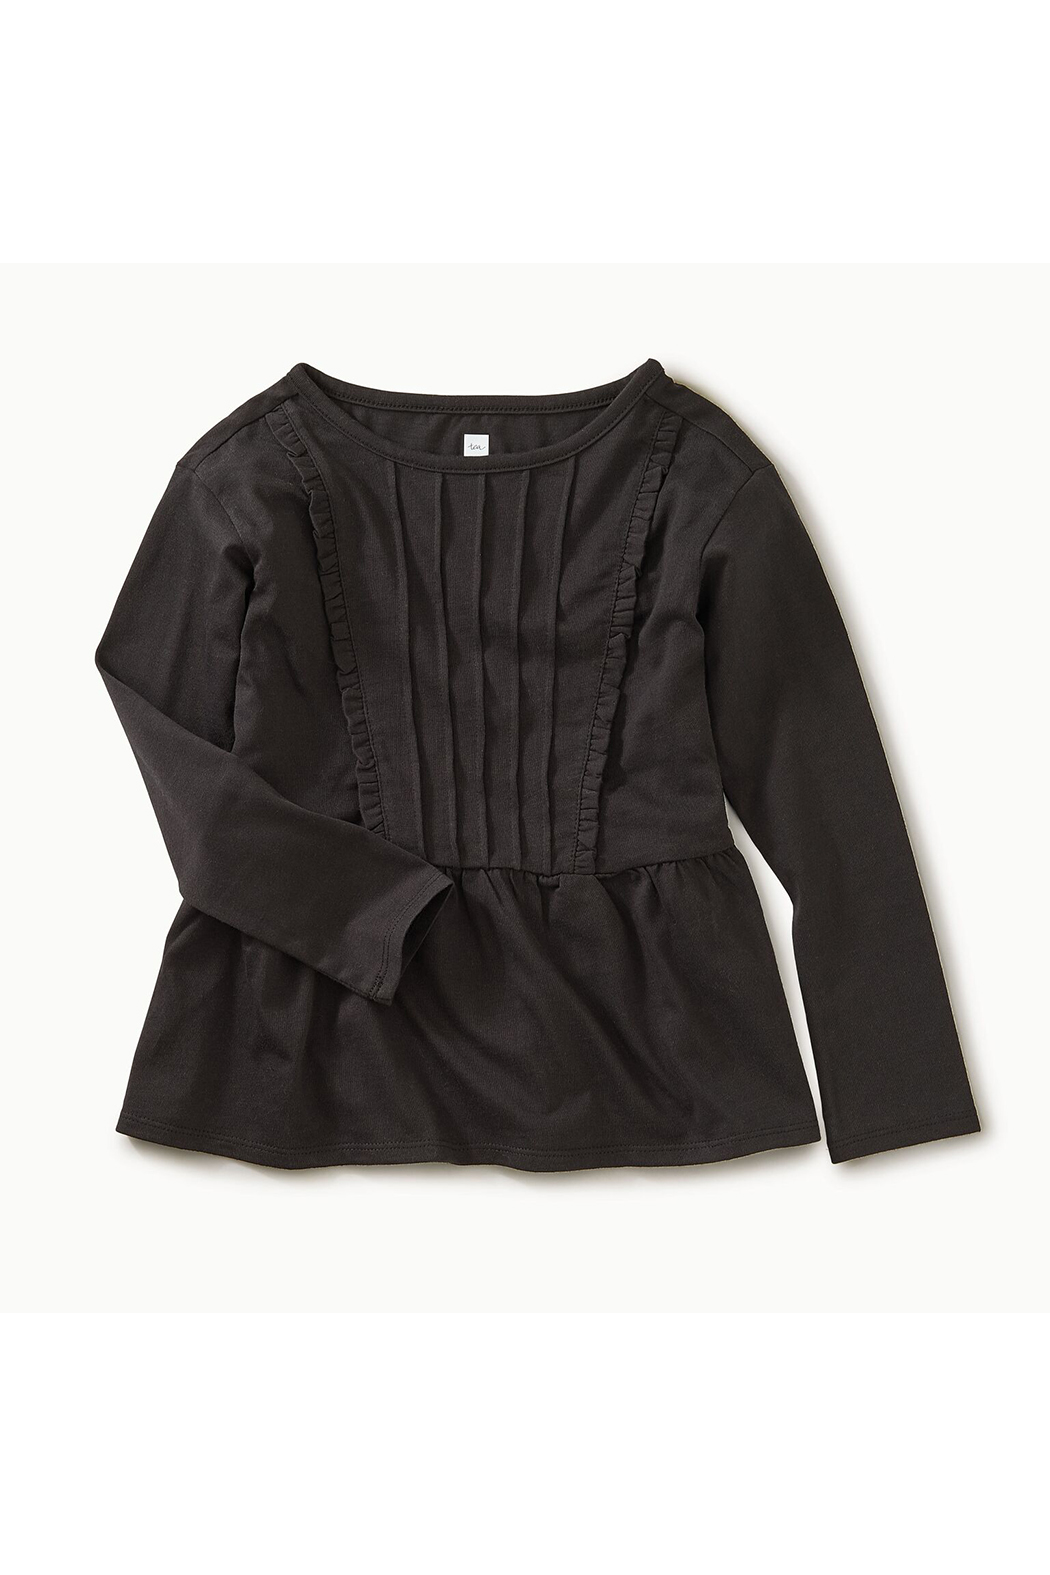 Tea Collection Pleated Pintuck Top - Main Image